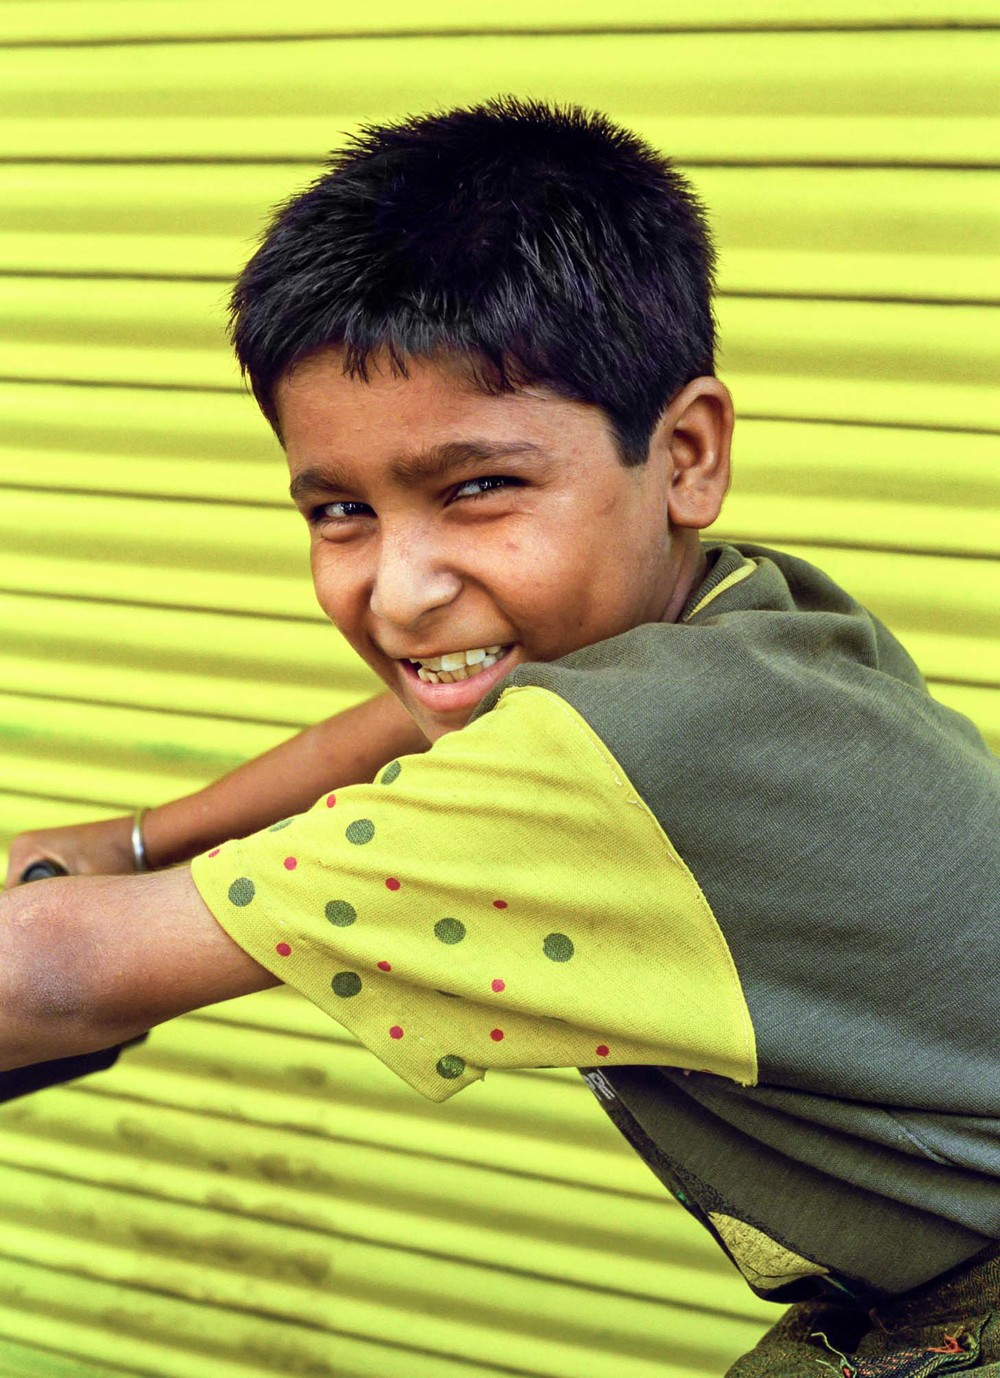 Young boy, Jaipur, India